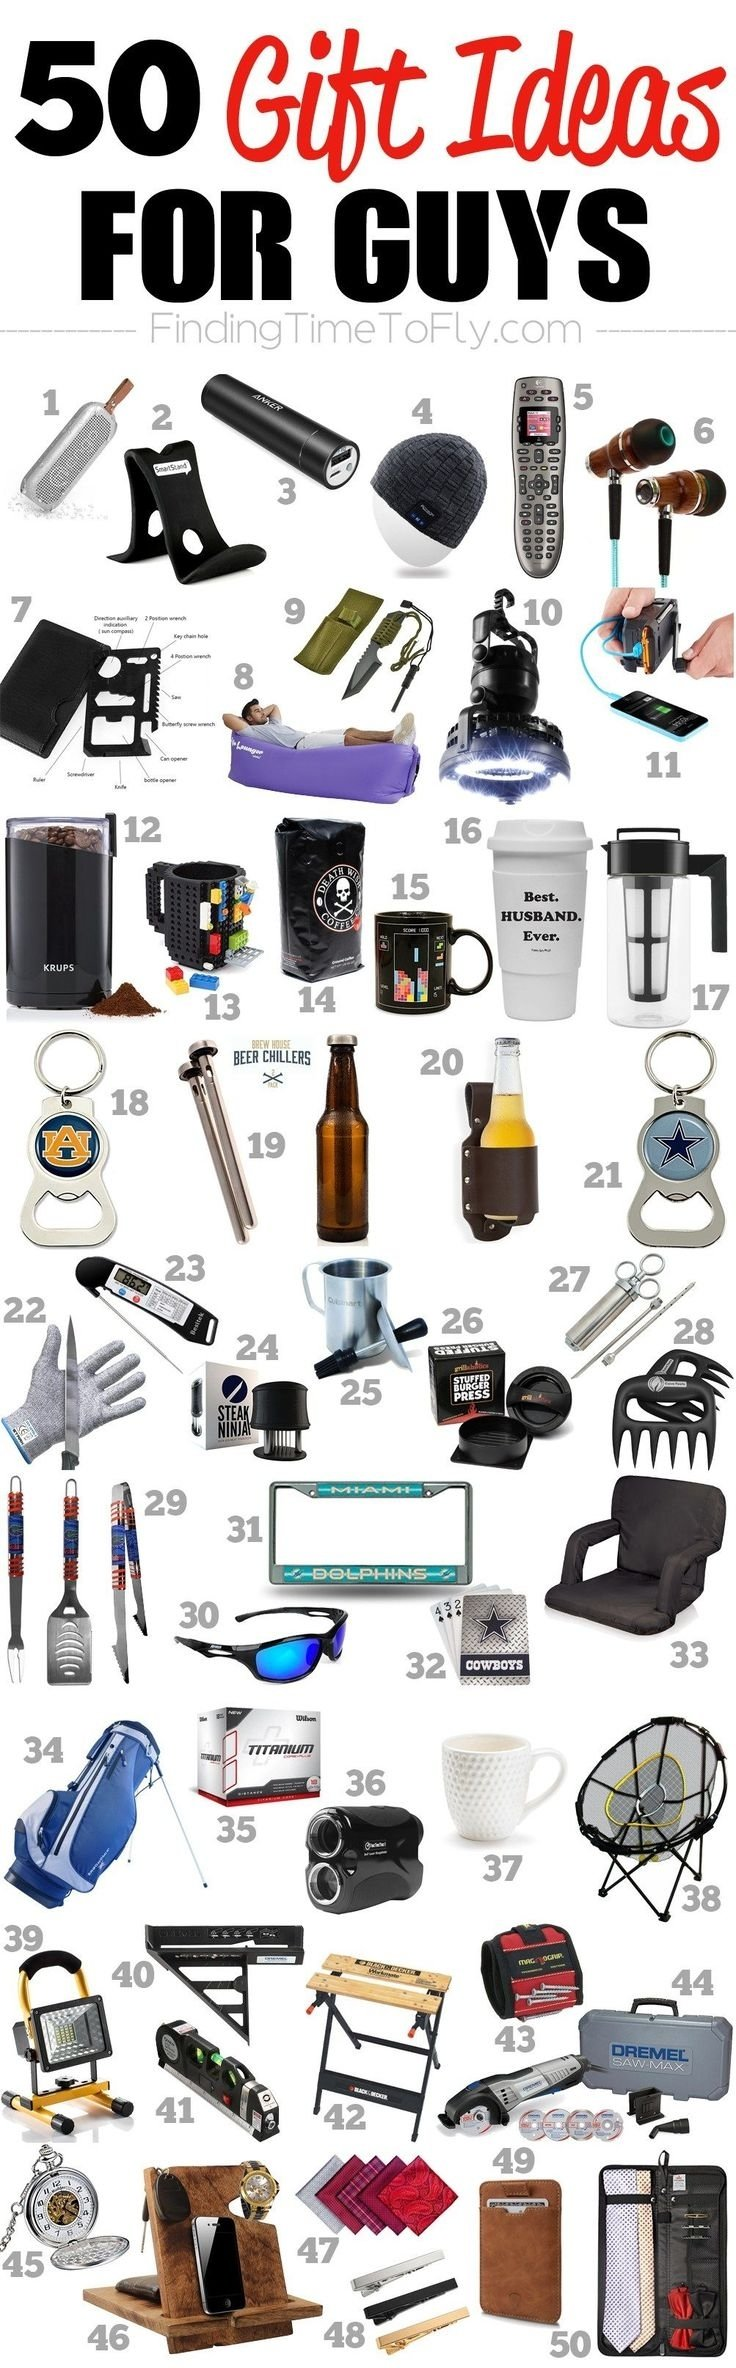 10 Unique Christmas Gift Ideas For My Husband 178 best gifts for him images on pinterest gift for men 3 2020